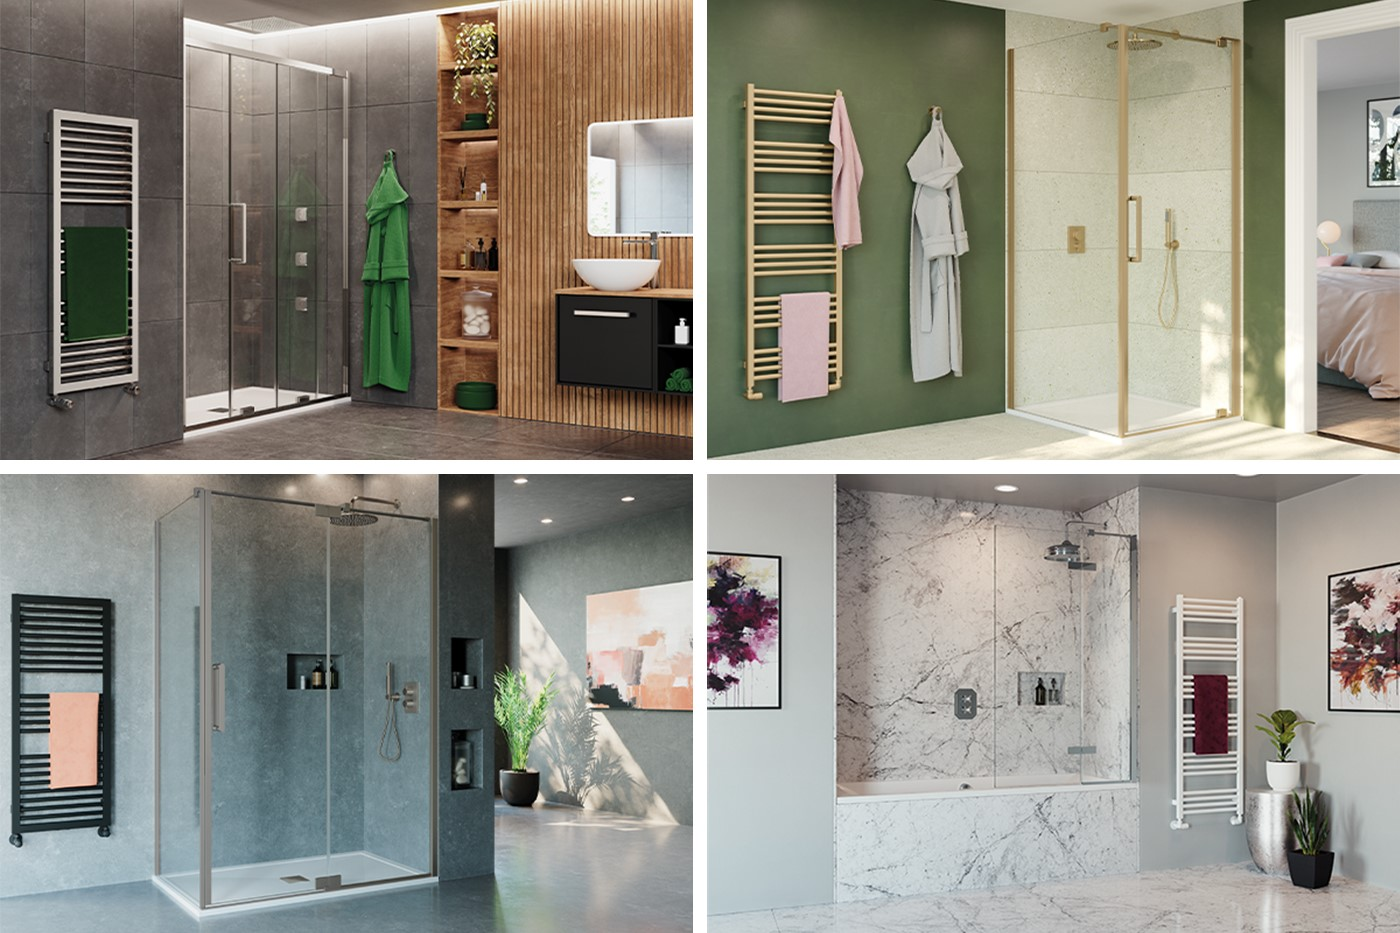 Contemporary Shower Room   For a luxury modern shower design providing the ultimate space of relaxation, look no further than OPTIX 10 luxury shower enclosures